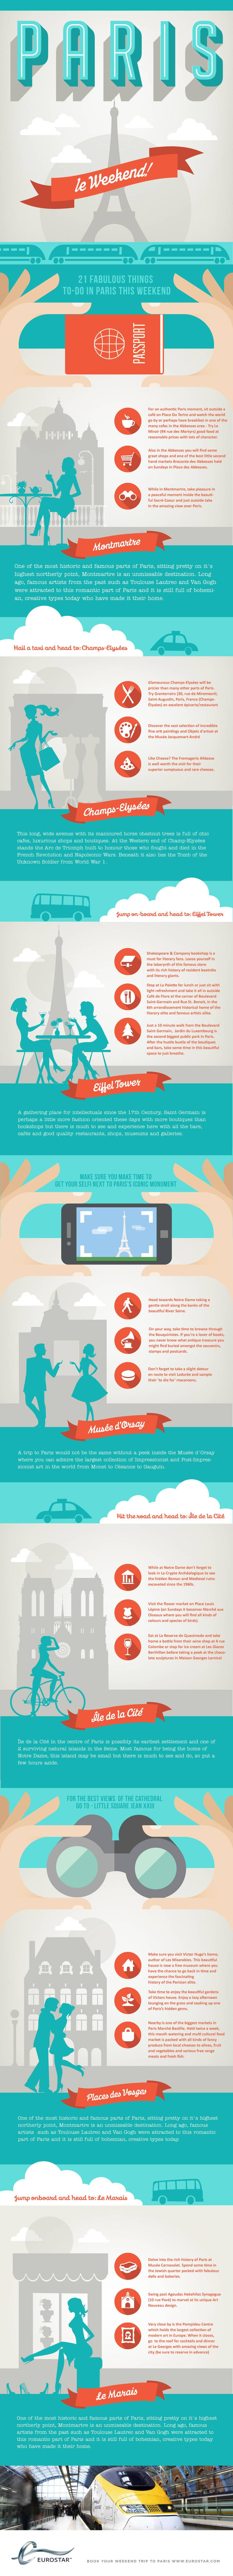 Infographic: 21 Things To do in Paris this weekend #infographic